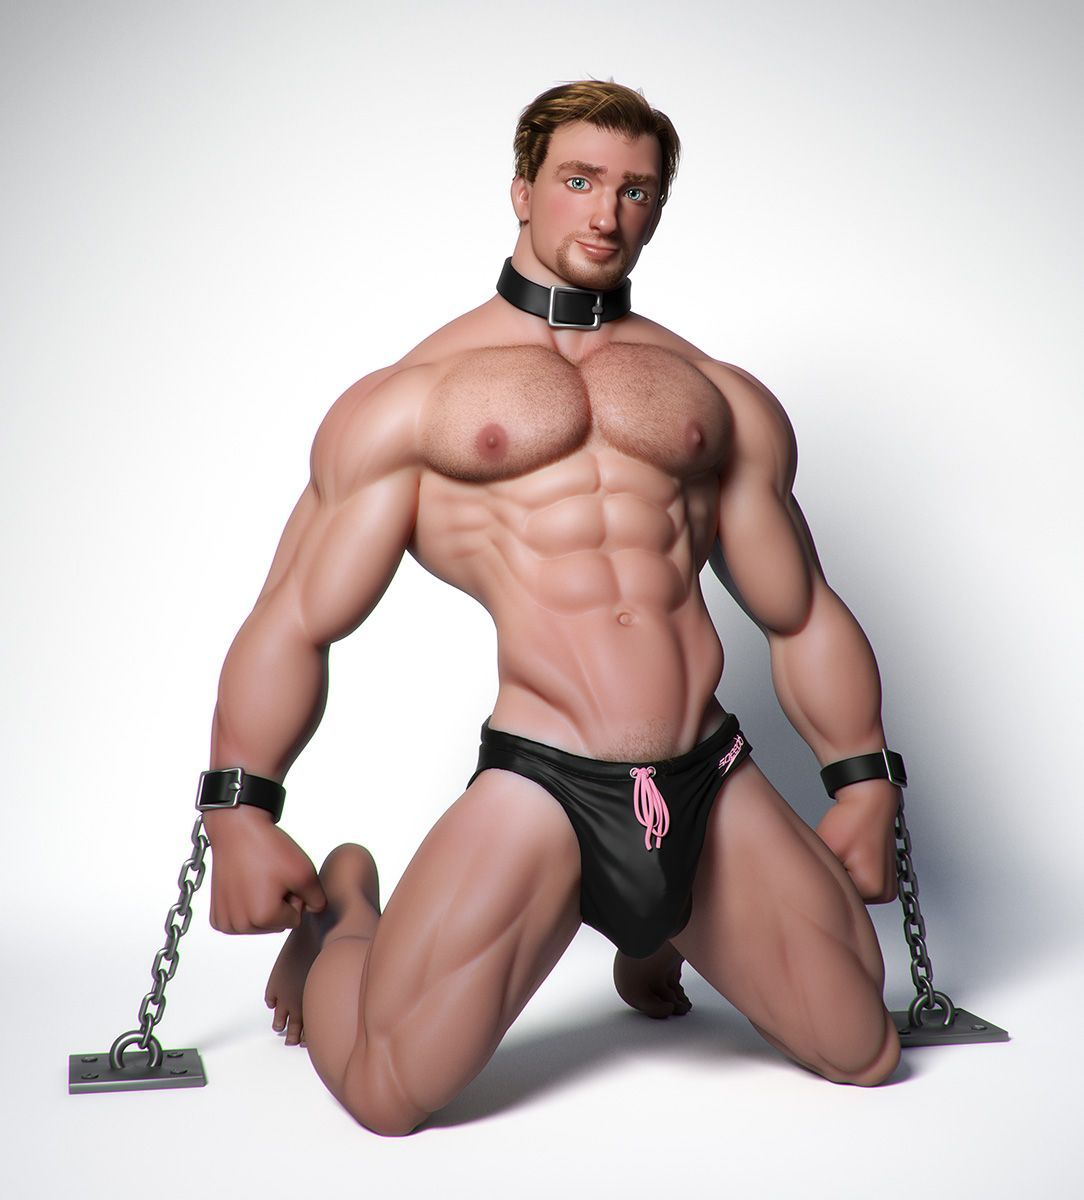 albron is creating 3d gay muscle men in 2018 | alex bronnings